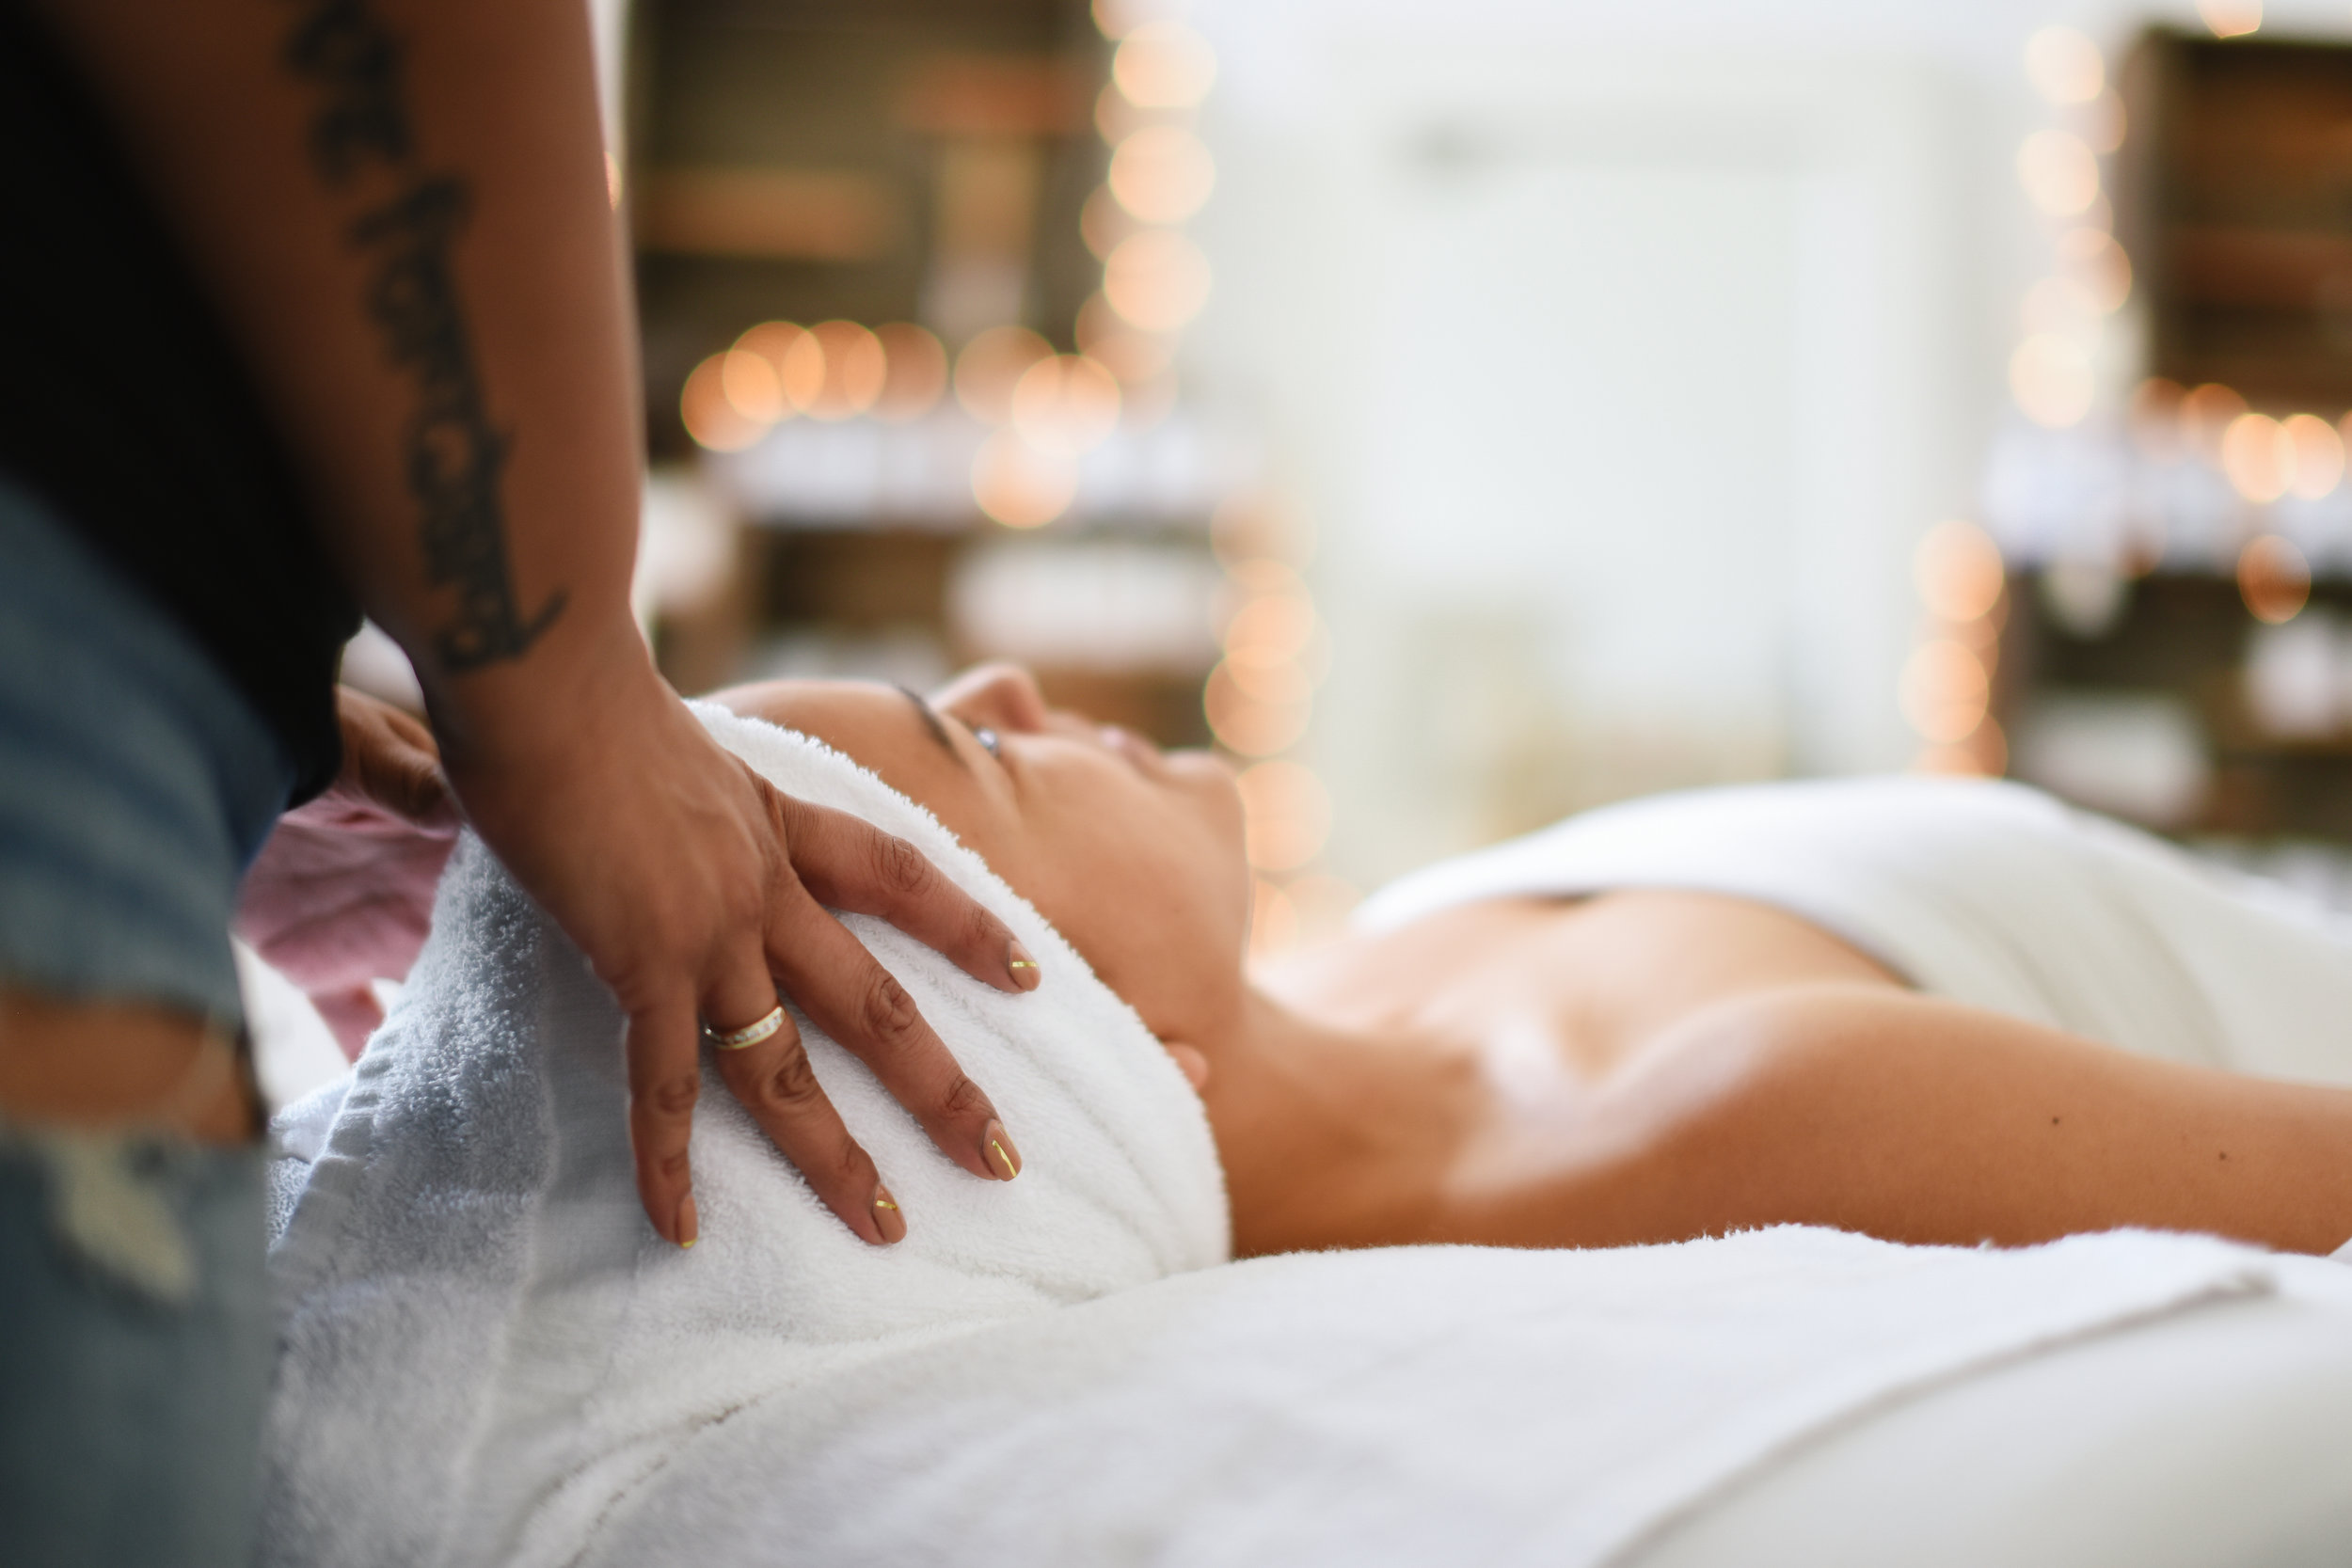 Healing beauty and renewal - through the magic of therapeutic facials, sugaring and massage.